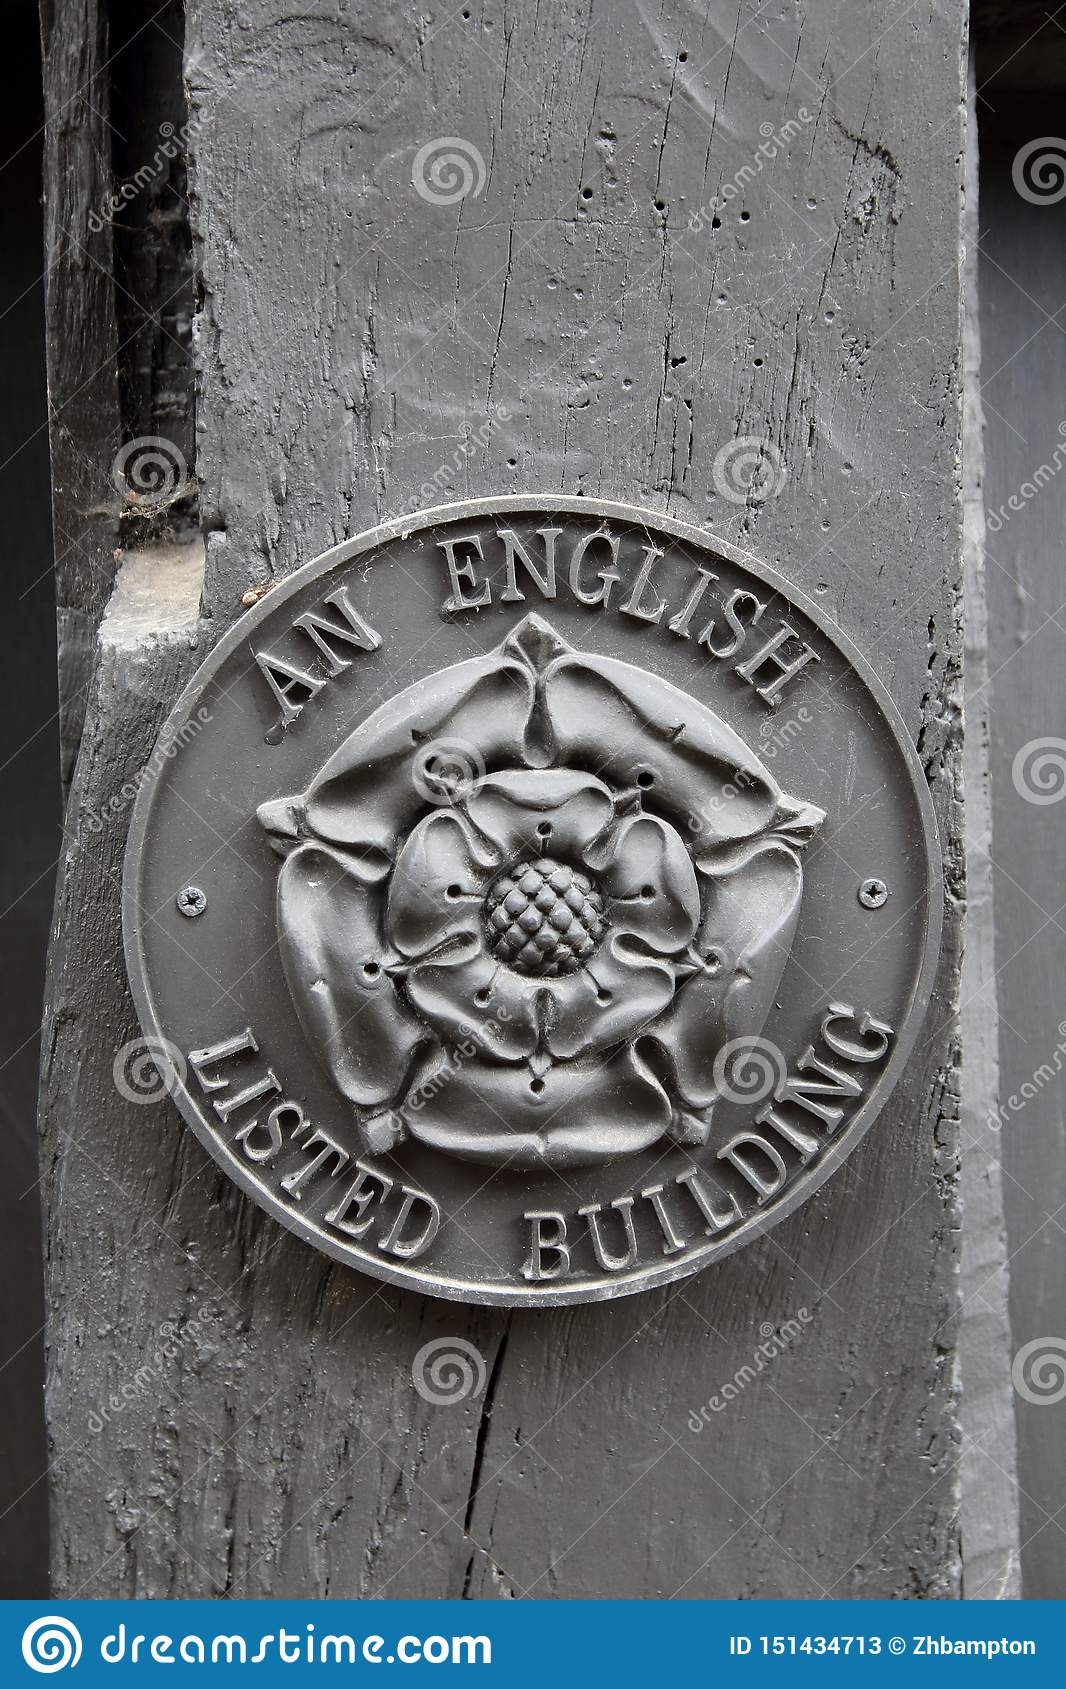 An English Listed Building sign.